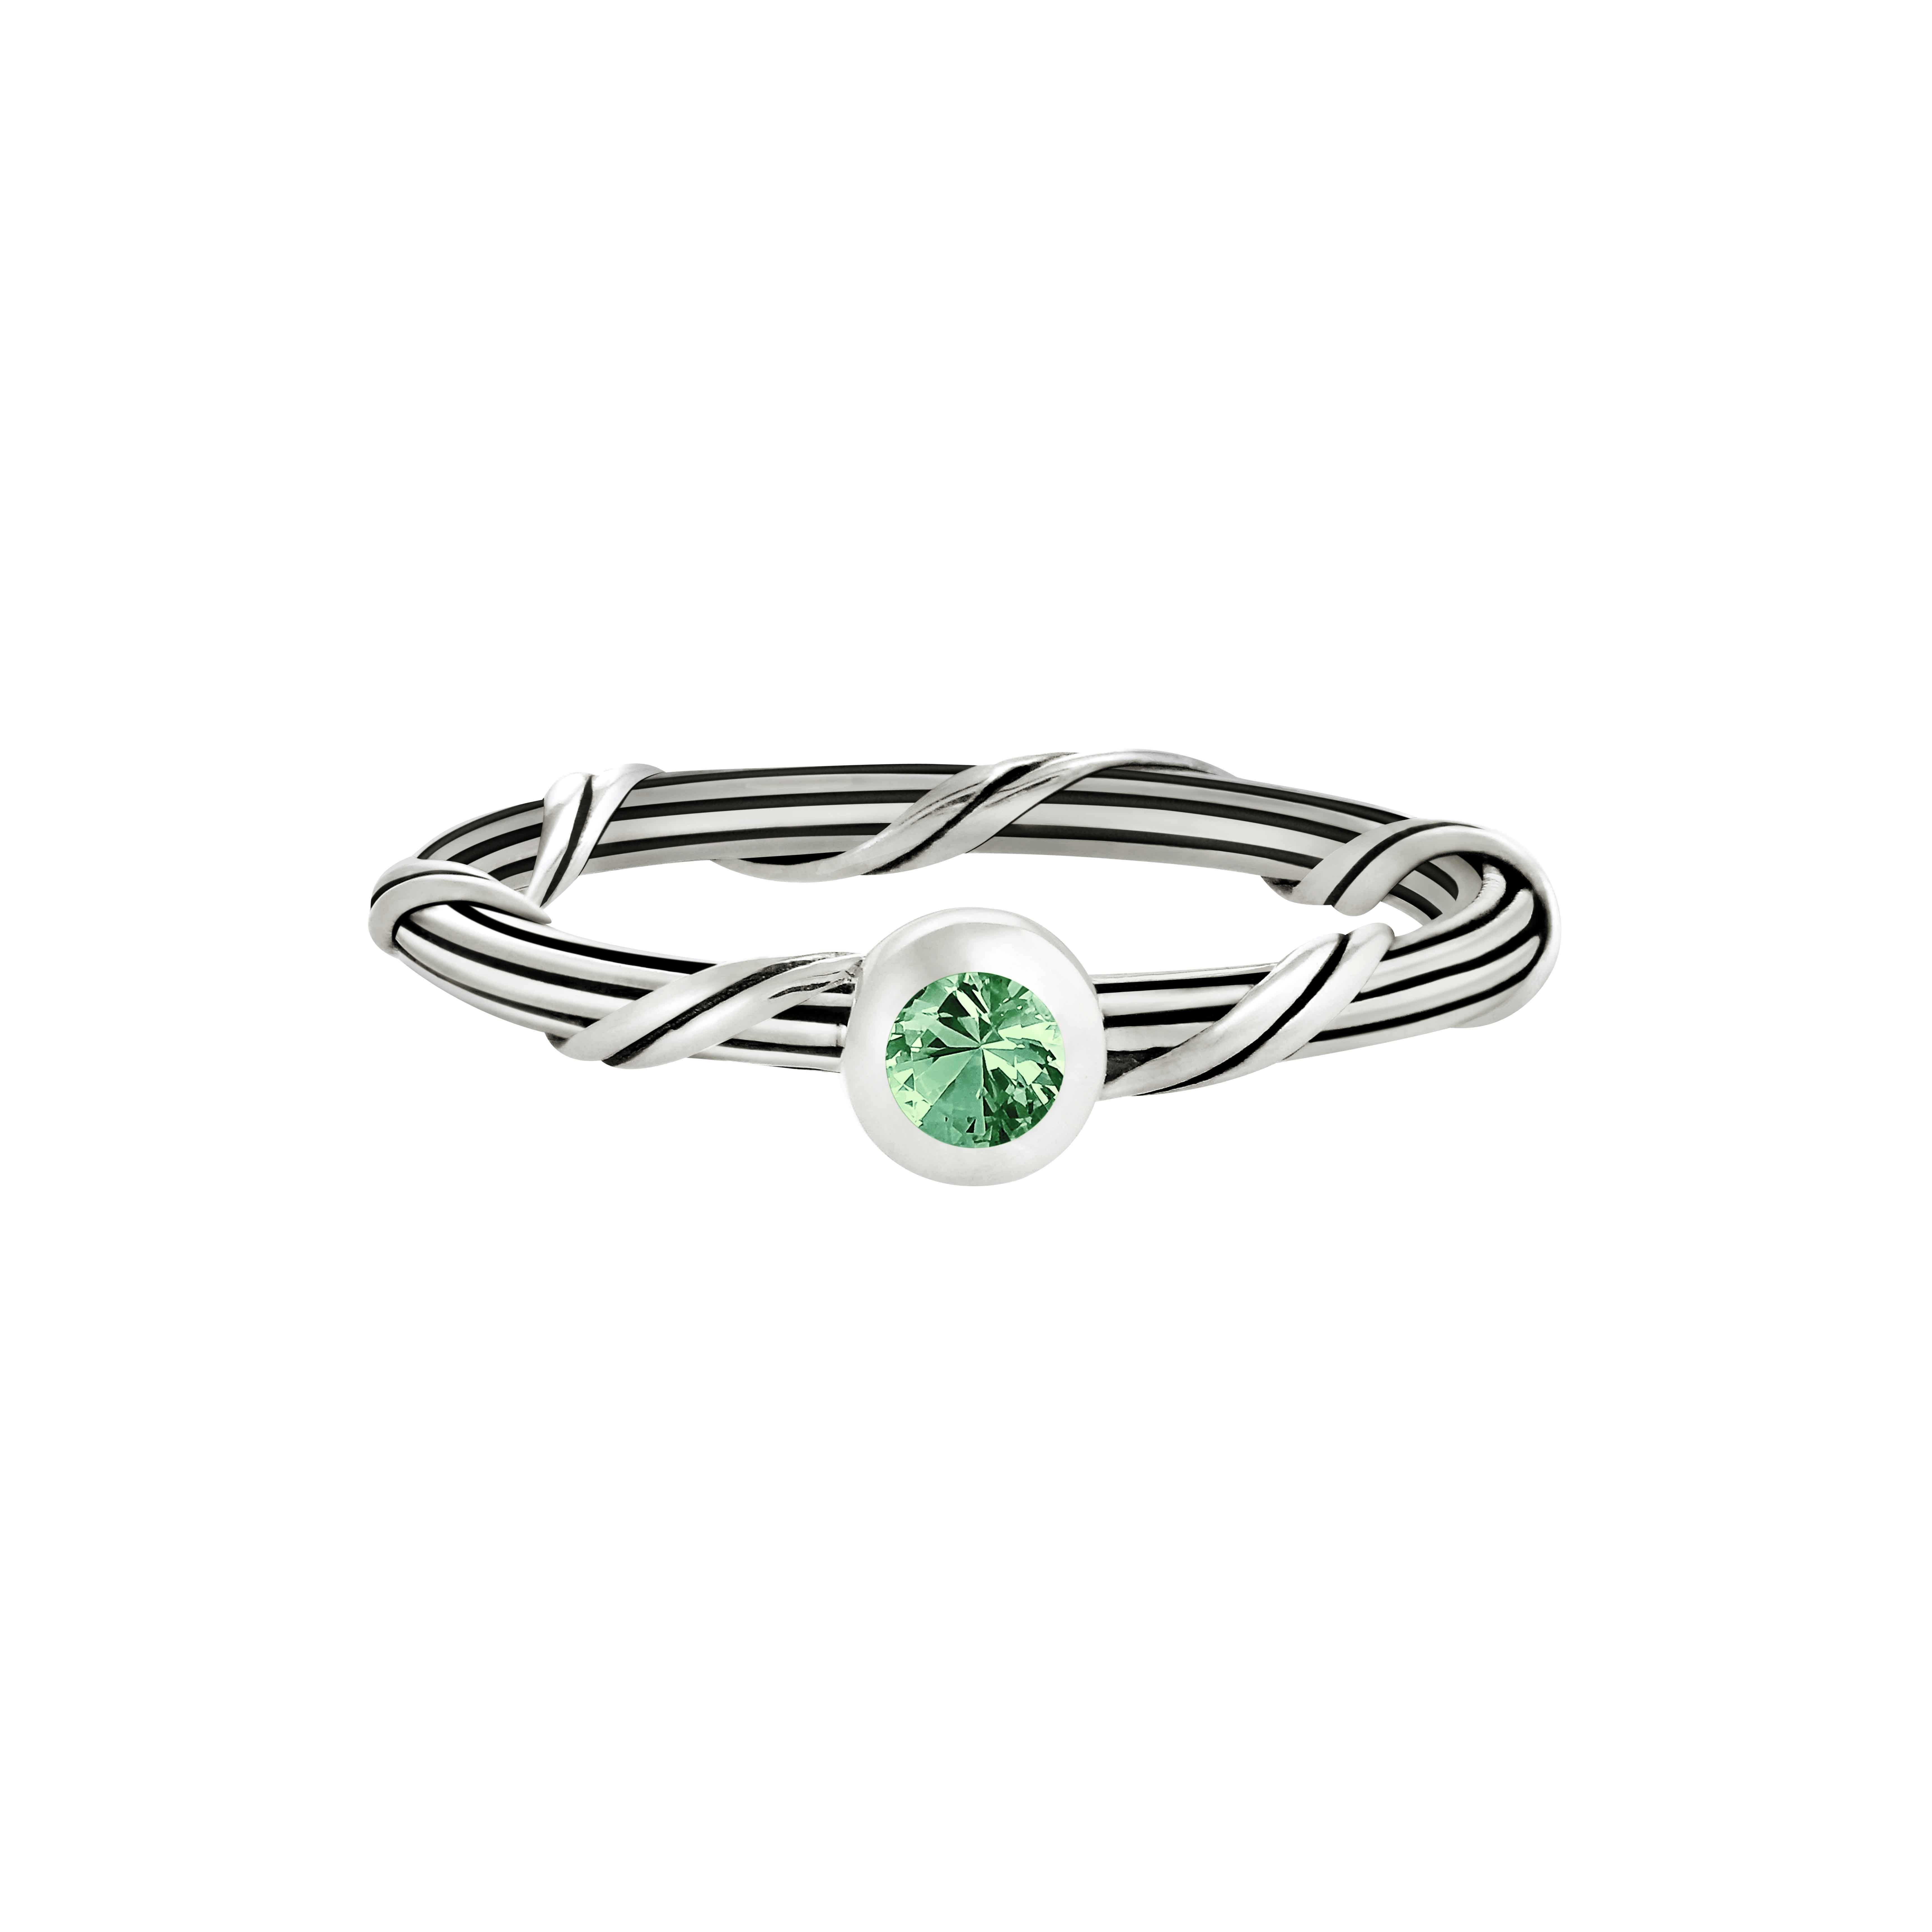 Signature Romance Emerald Ring in sterling silver